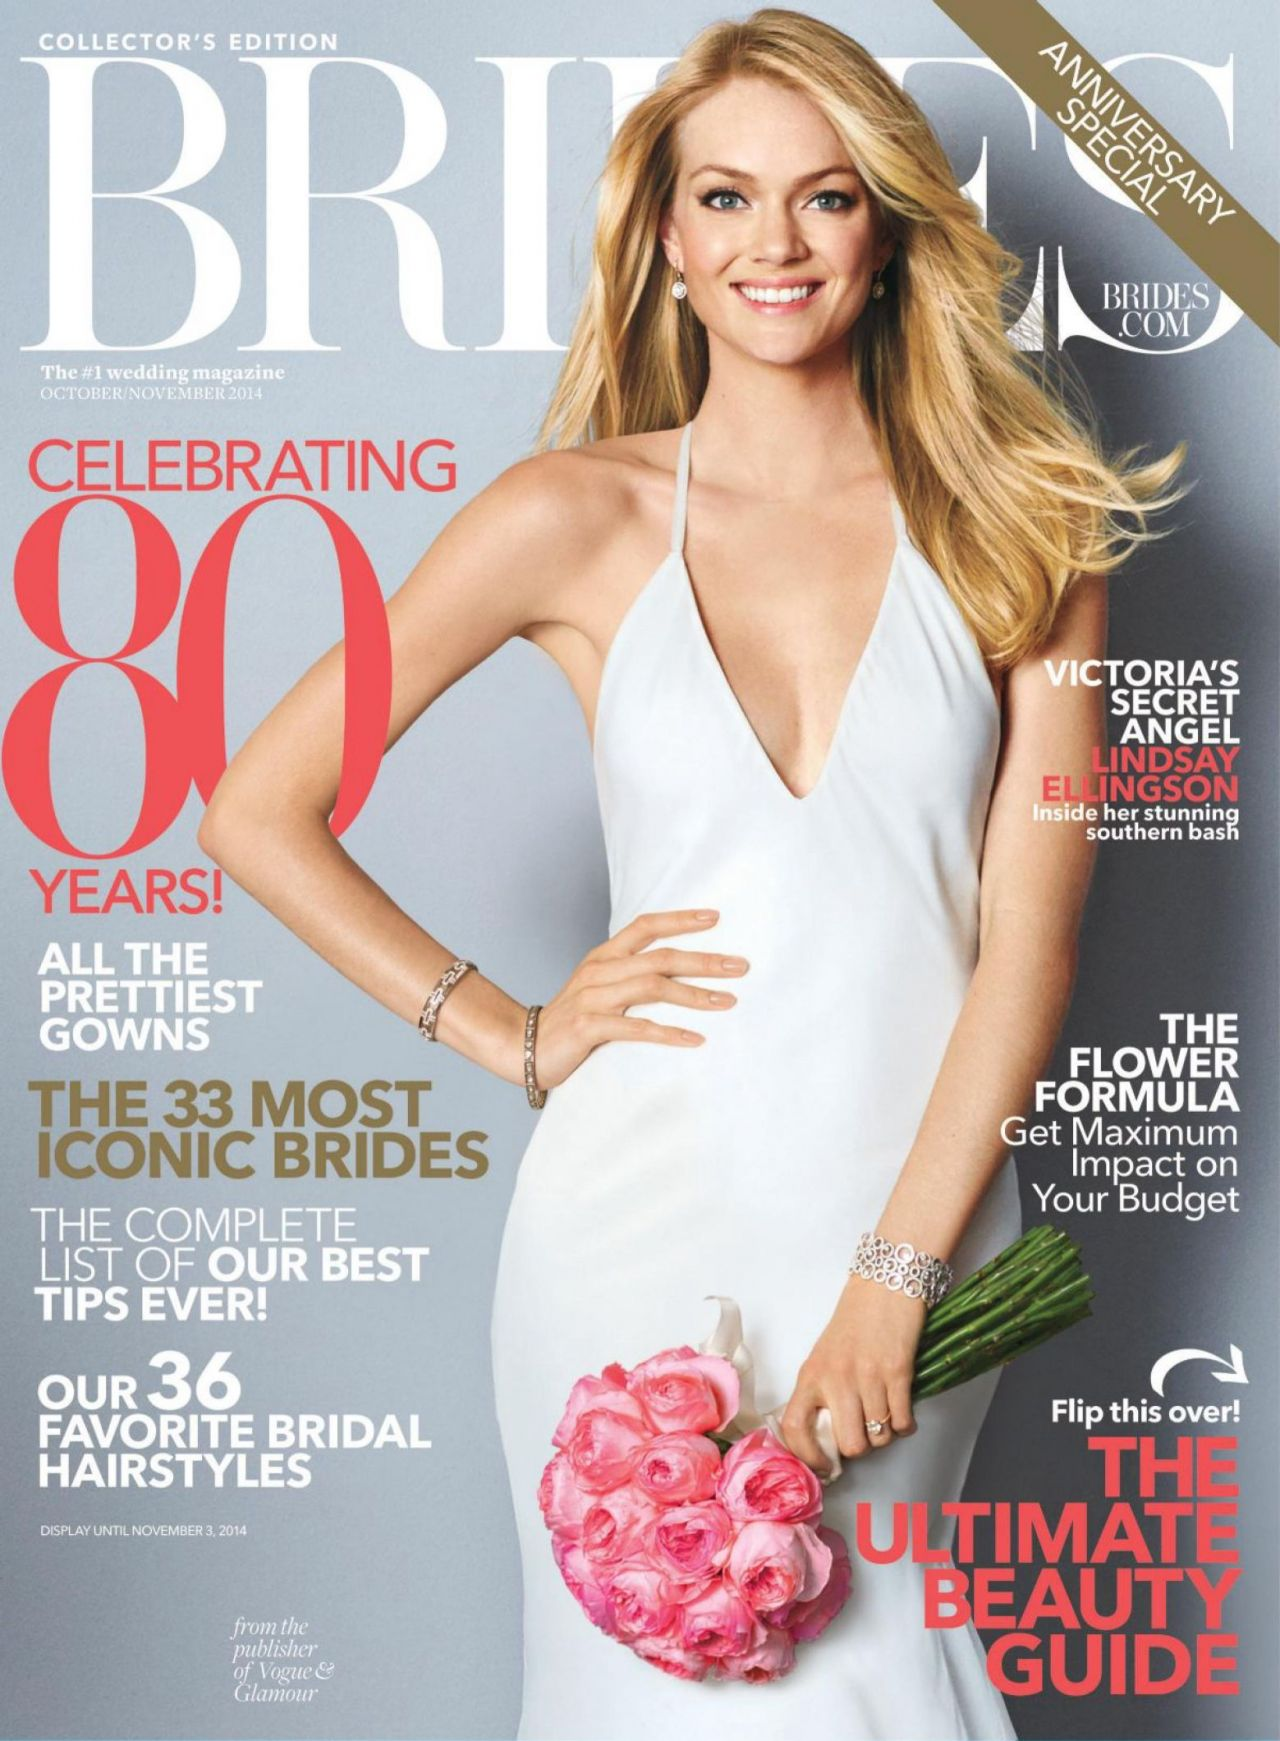 lindsay-ellingson-brides-magazine-october-november-2014_1.jpg